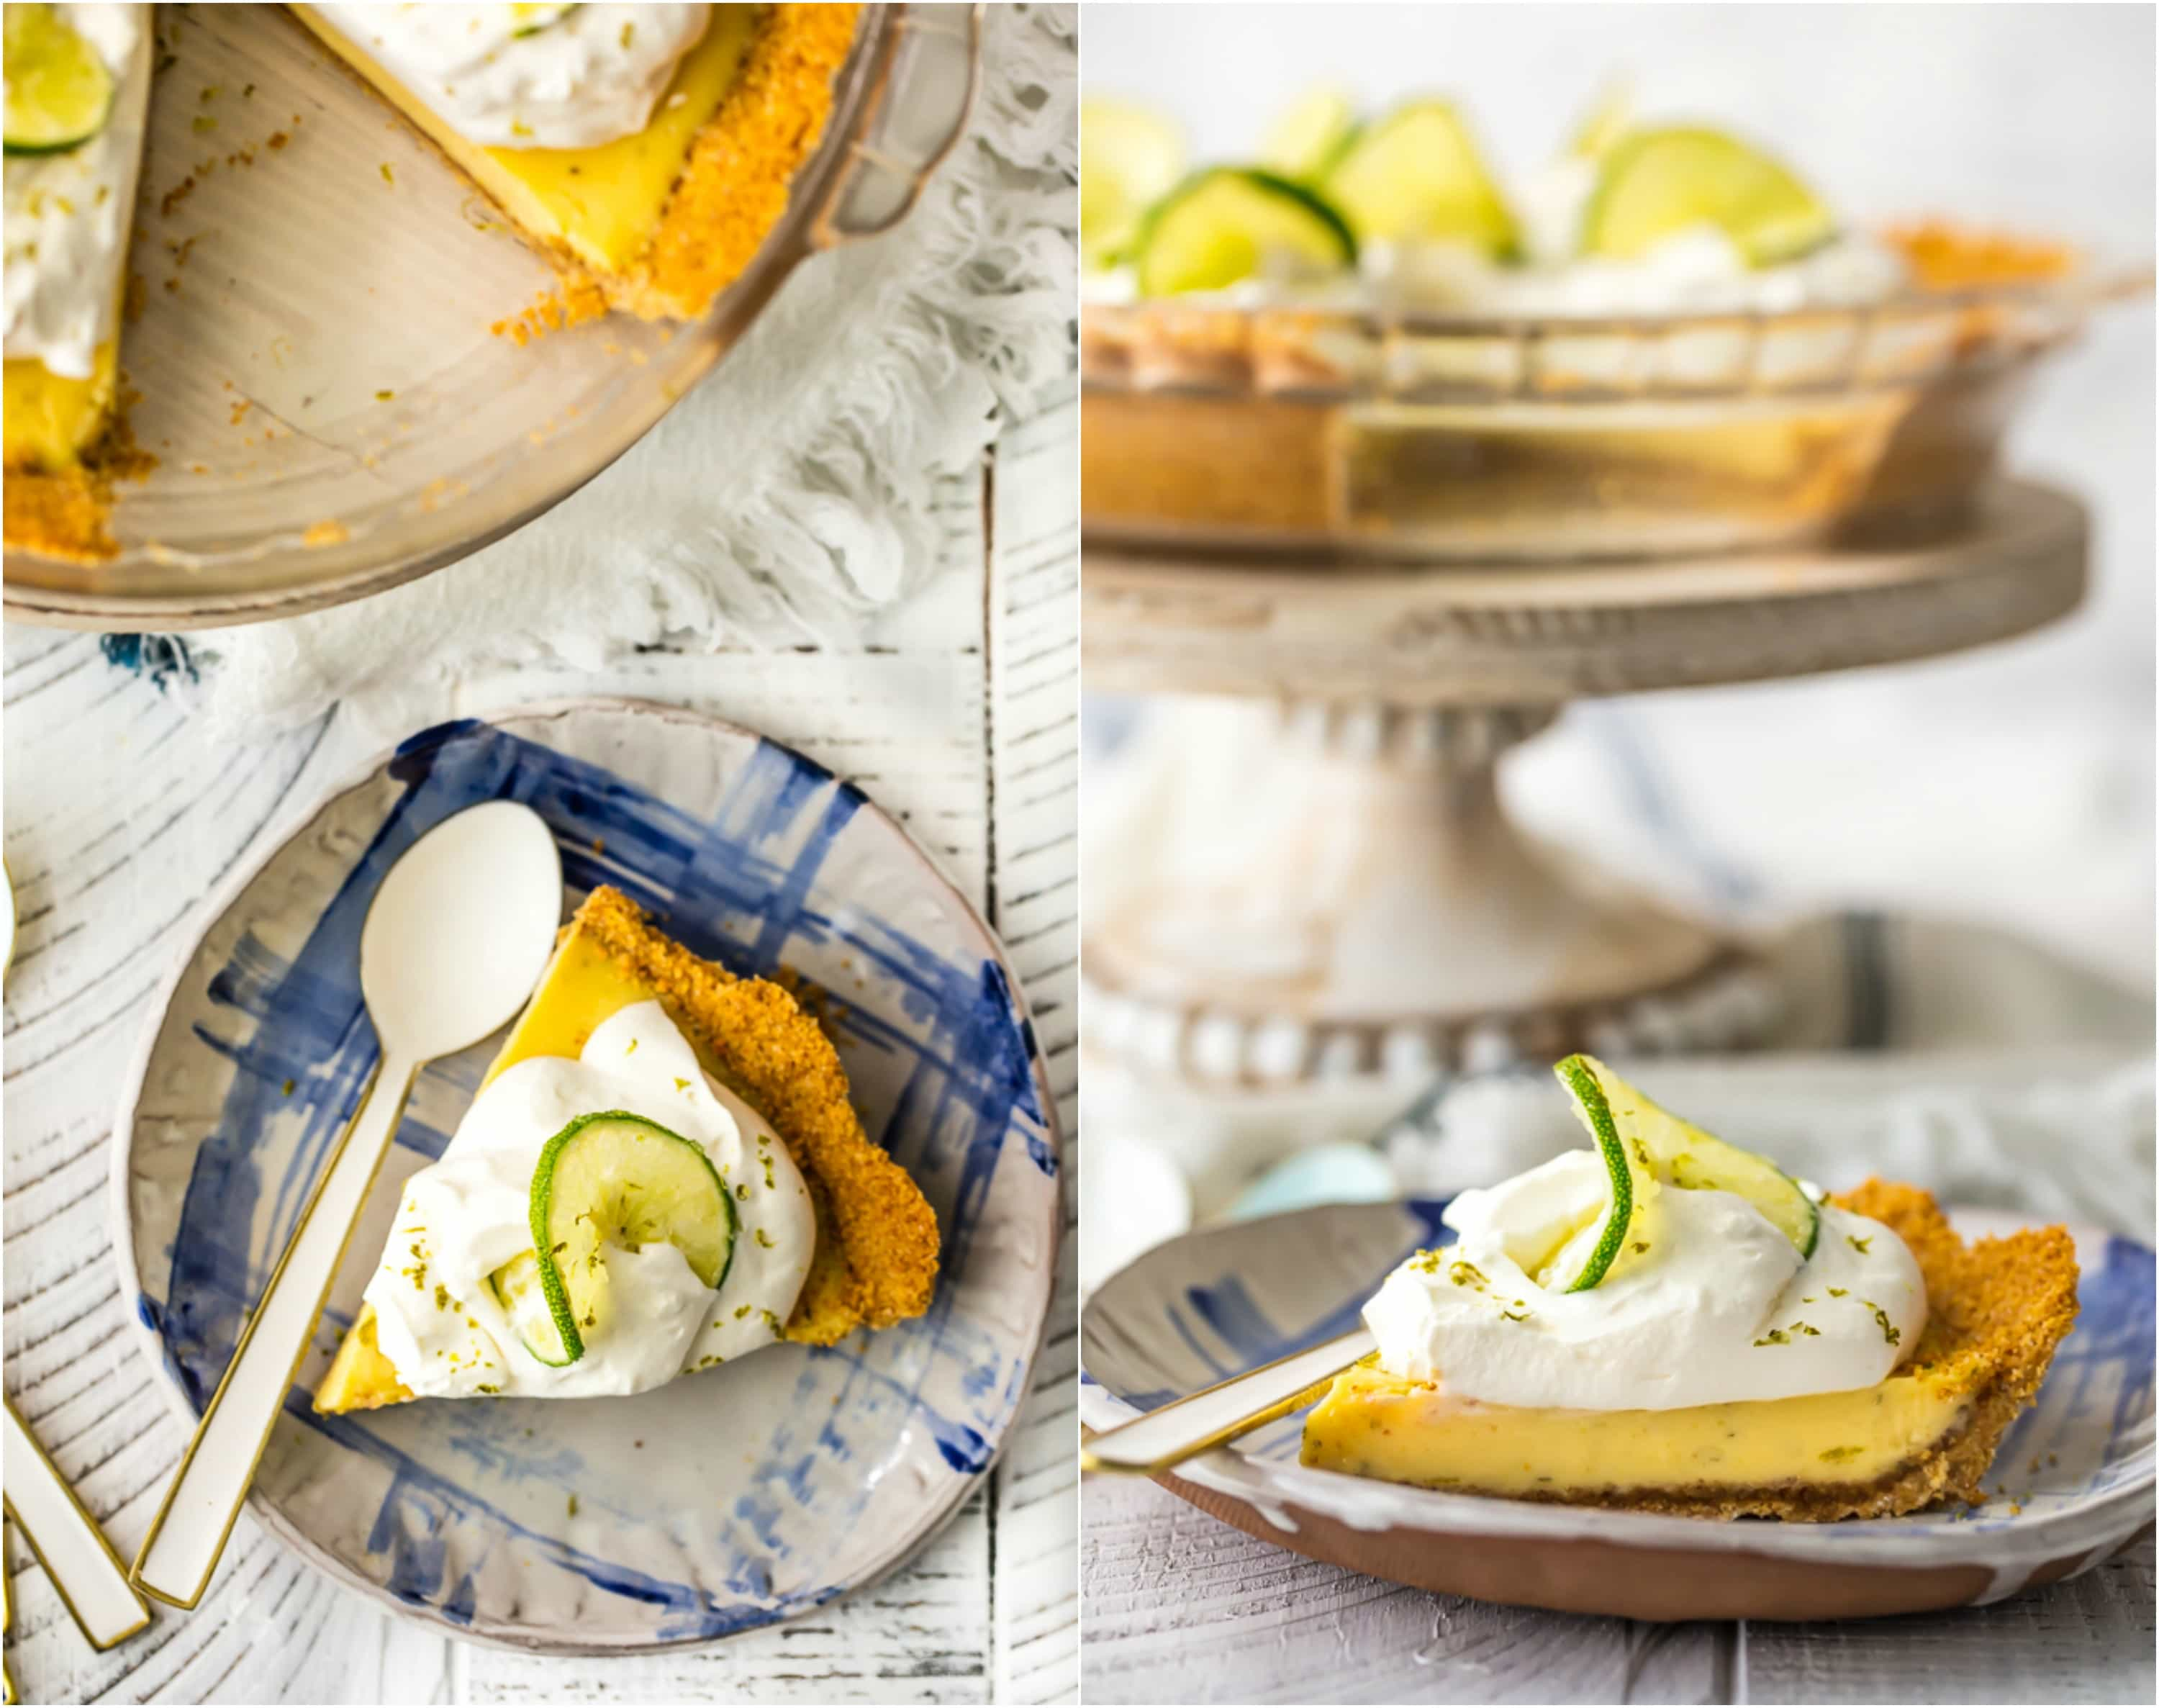 Key Lime Pie is a Summer must make. This EASY Key Lime Pie Recipe is one of my most treasured recipes; we love to eat it all Summer Long. This delicious pie recipe is part creamy, party tart, and all the way delicious. No outdoor BBQ or family celebration is complete without this perfect Key Lime Pie Recipe.